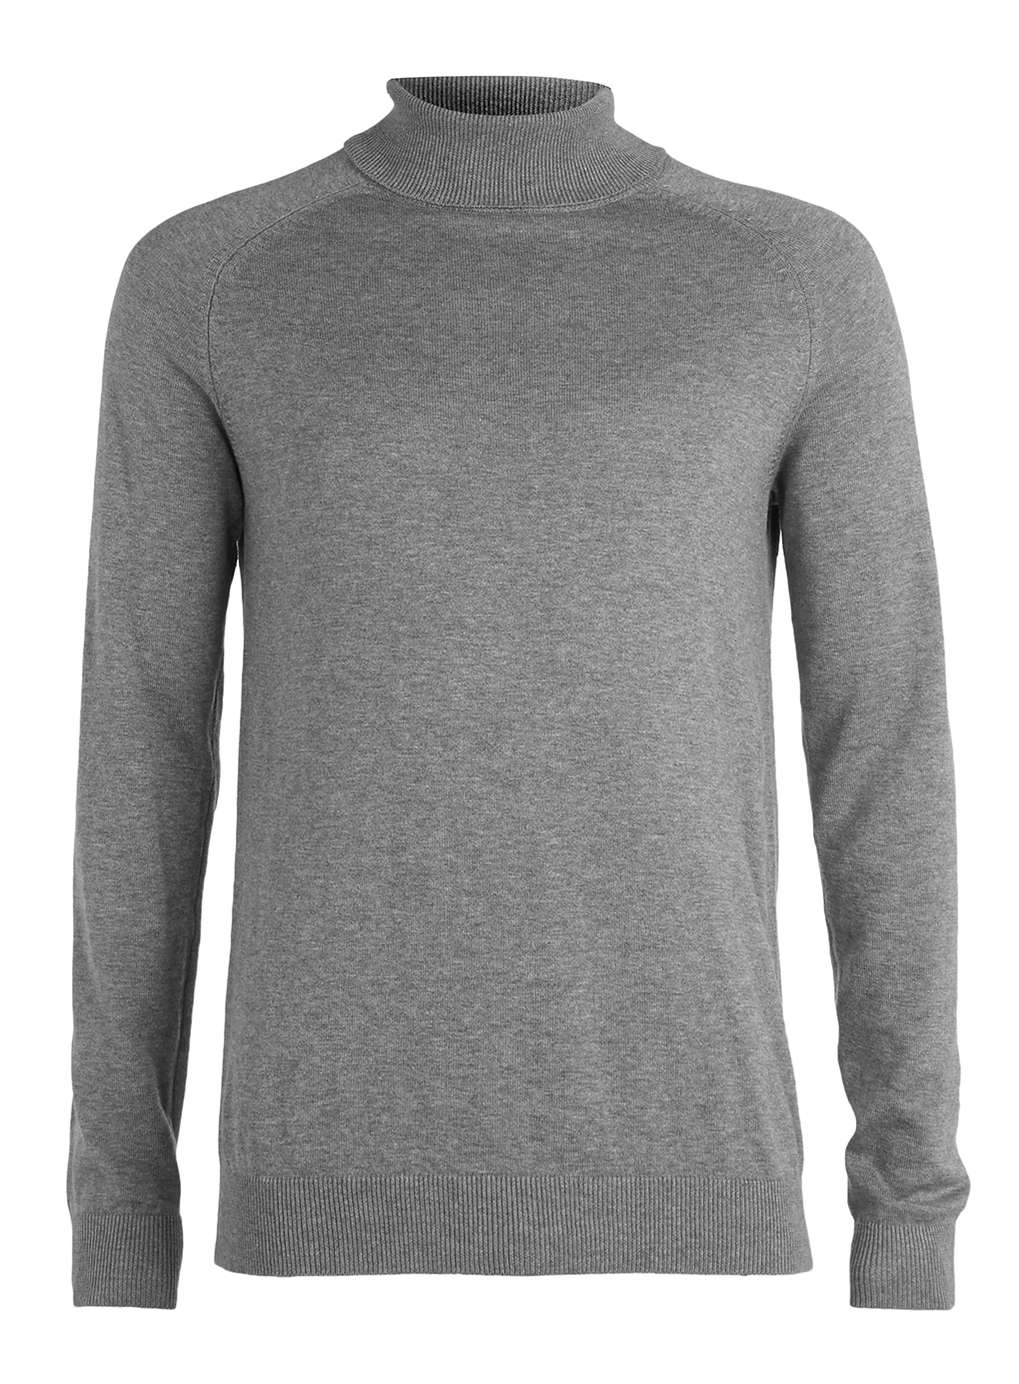 Topman Grey Roll Neck Jumper